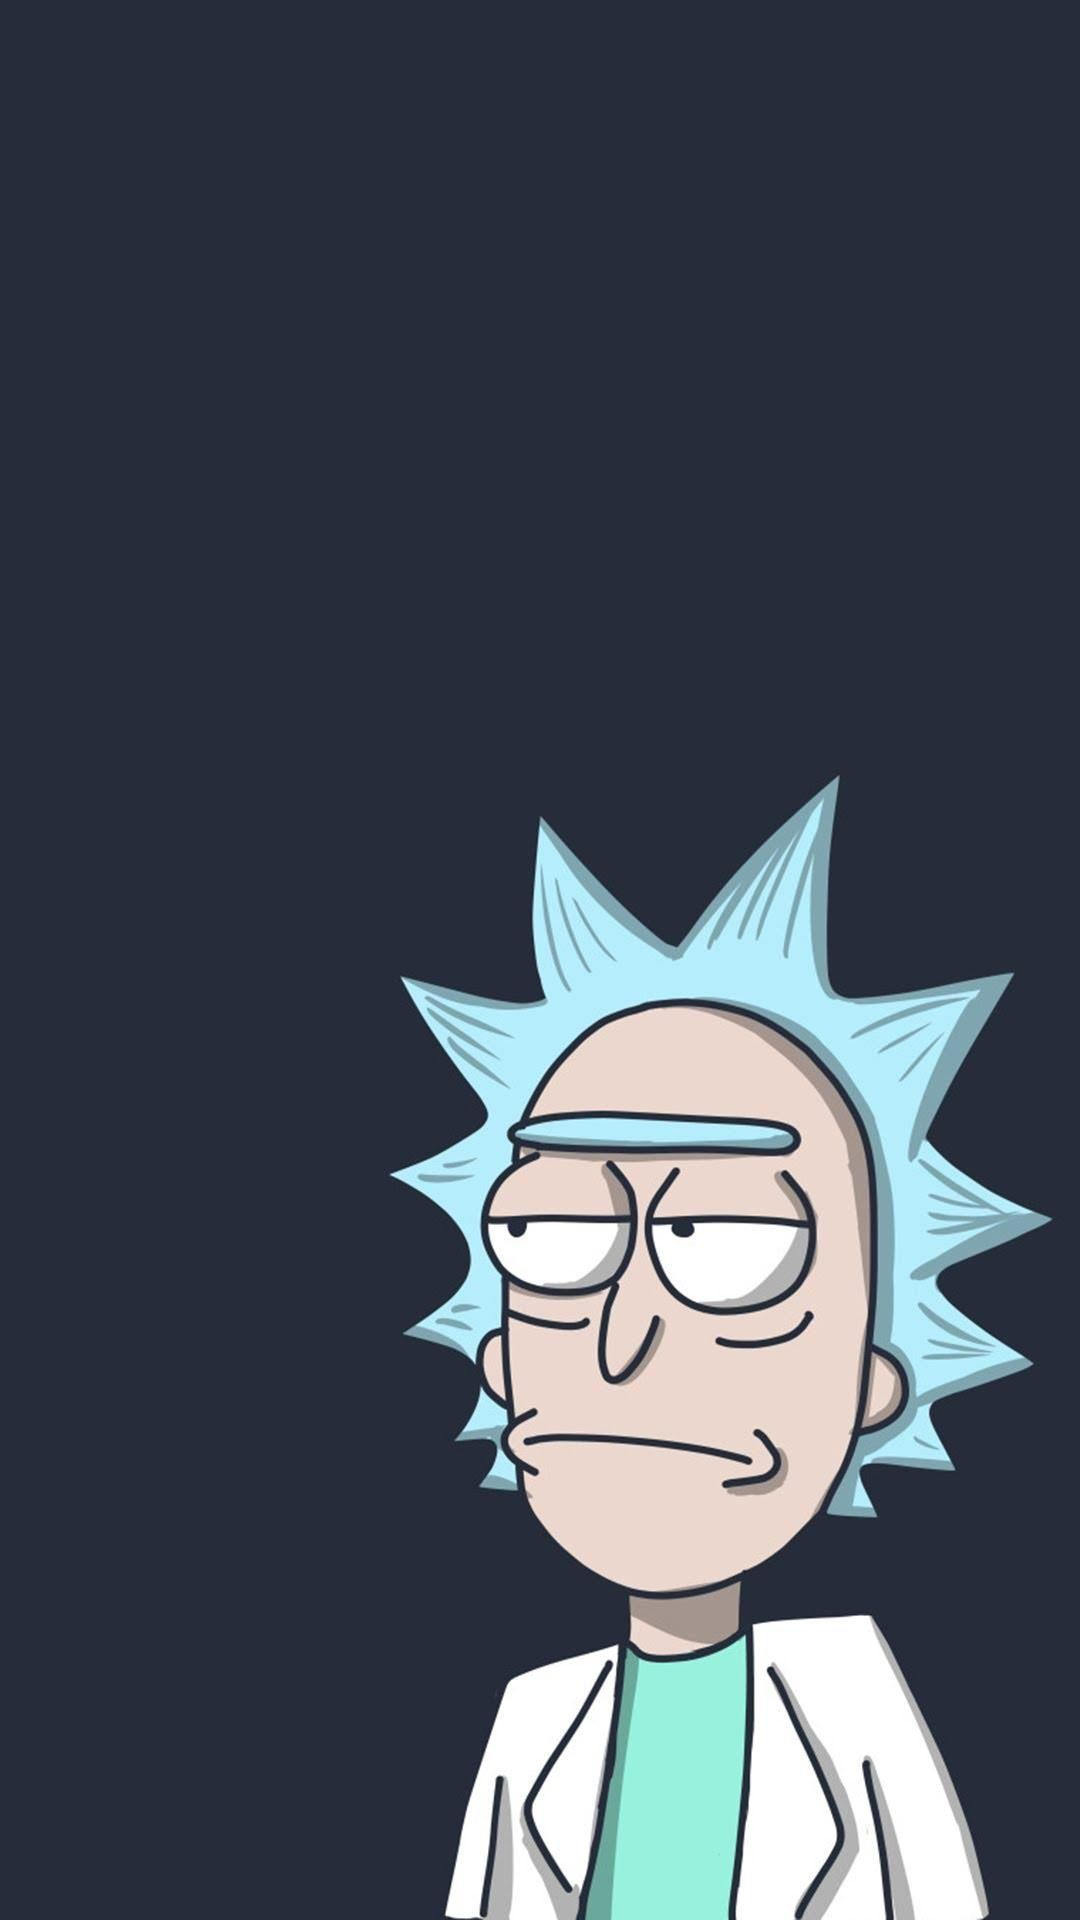 Rick and Morty Character Design